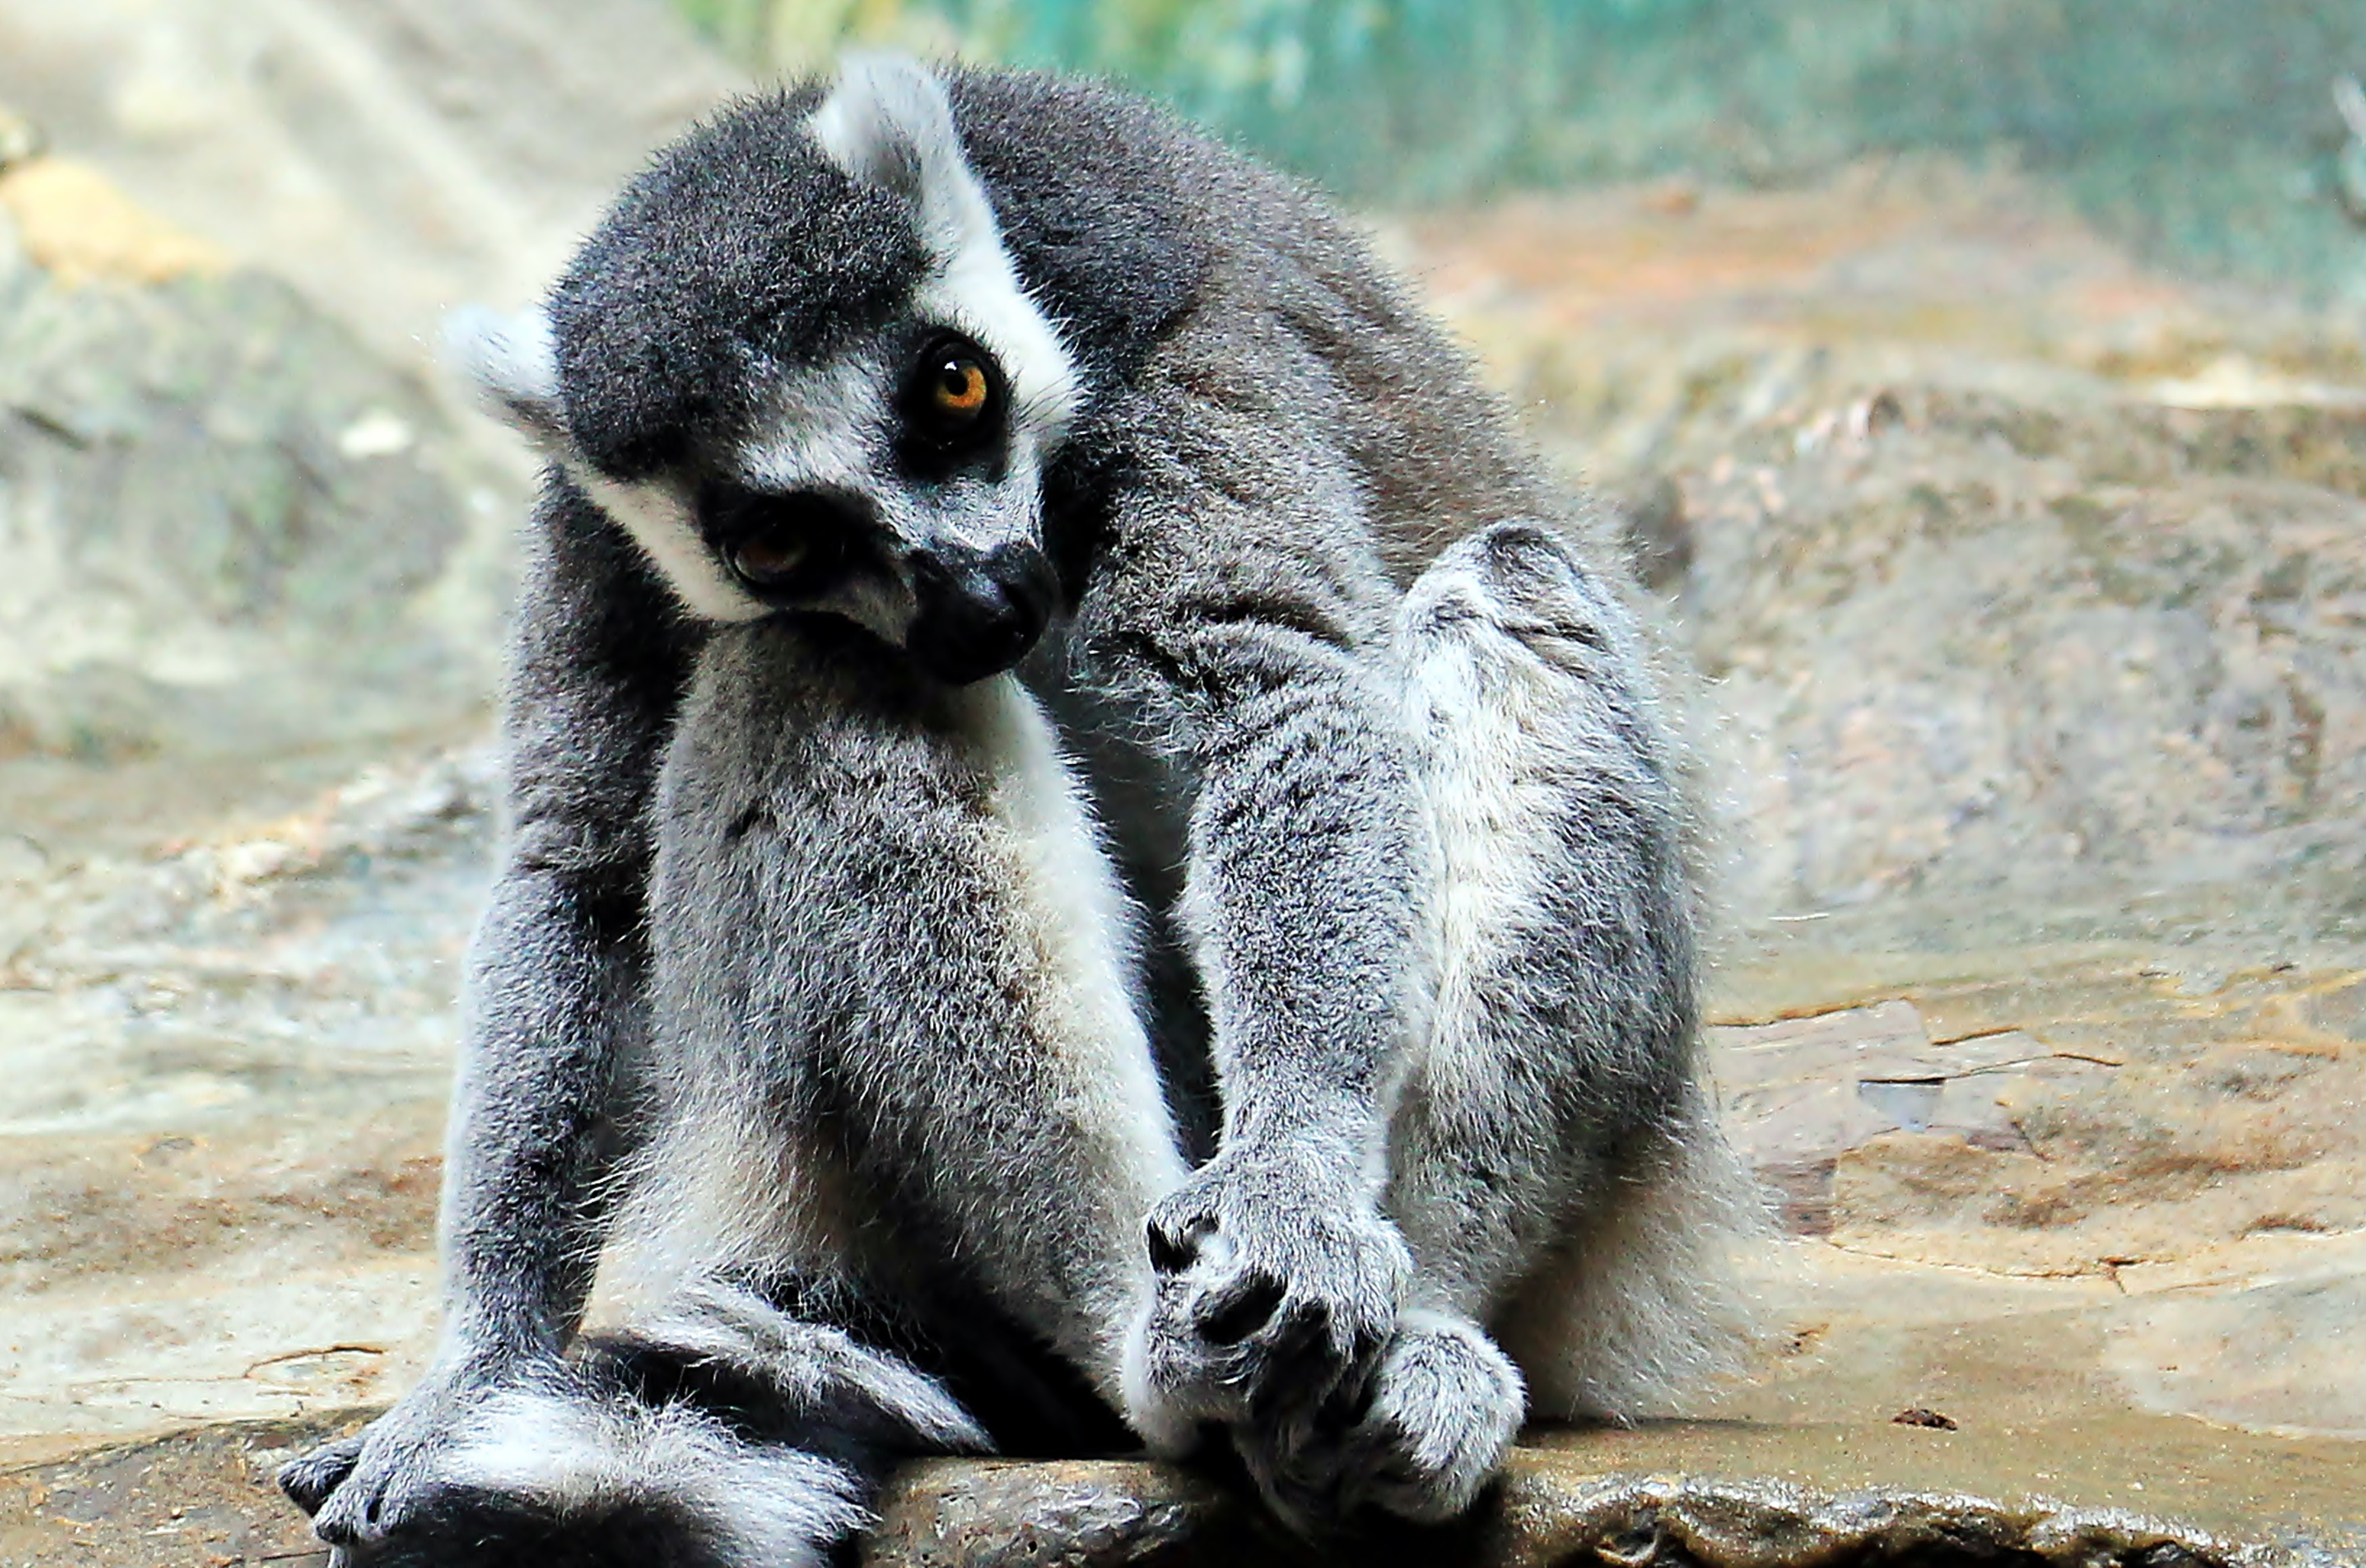 85898 download wallpaper Animals, Lemur, Beast, Striped, Sit screensavers and pictures for free